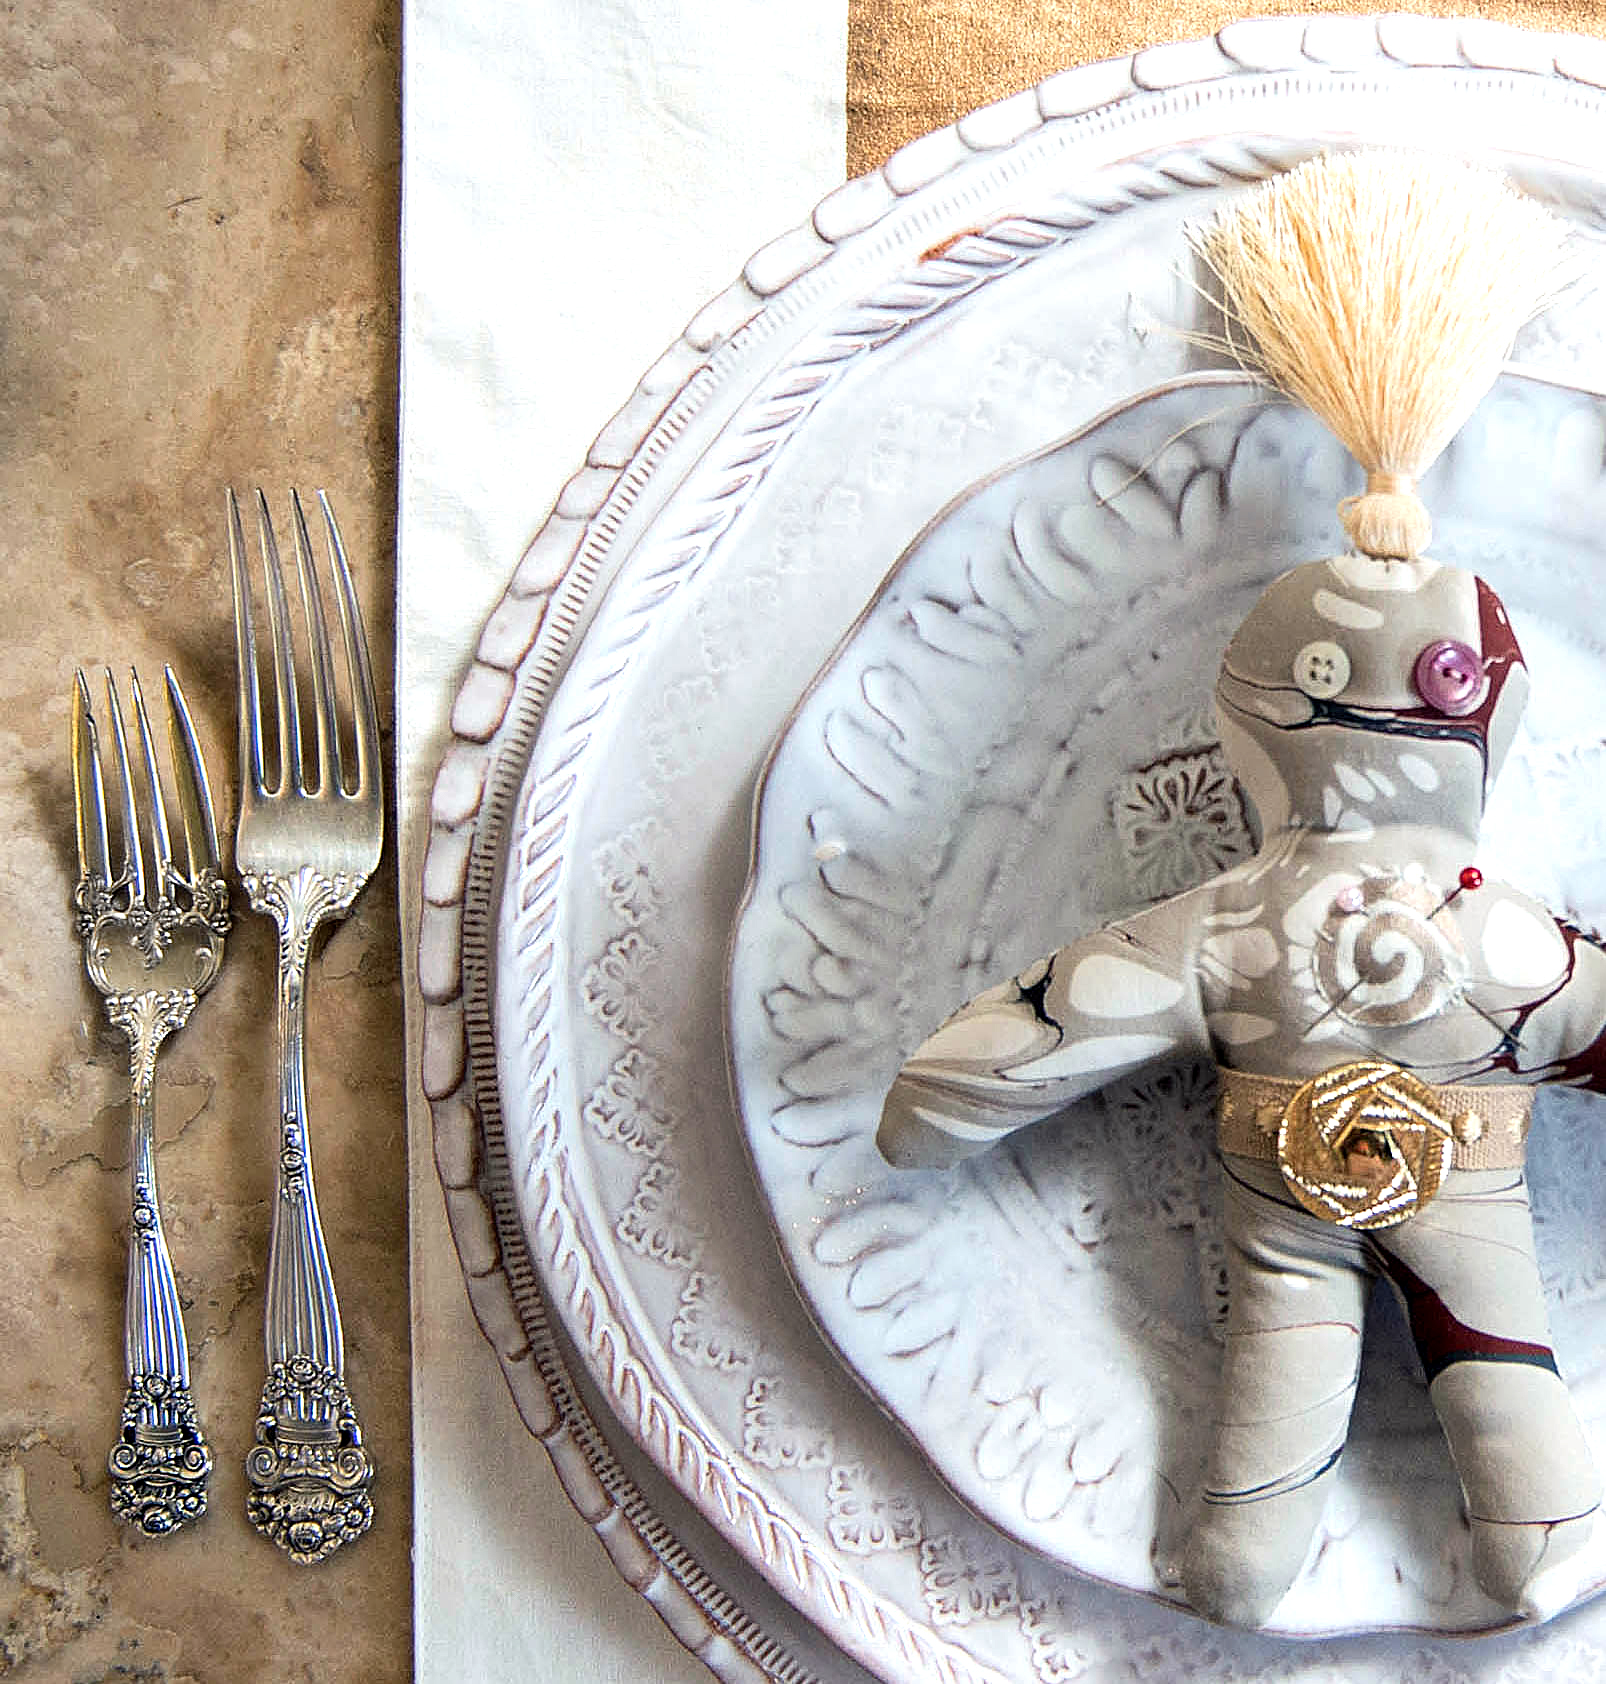 tablesetting0014-CROP-t2 (1 of 1)